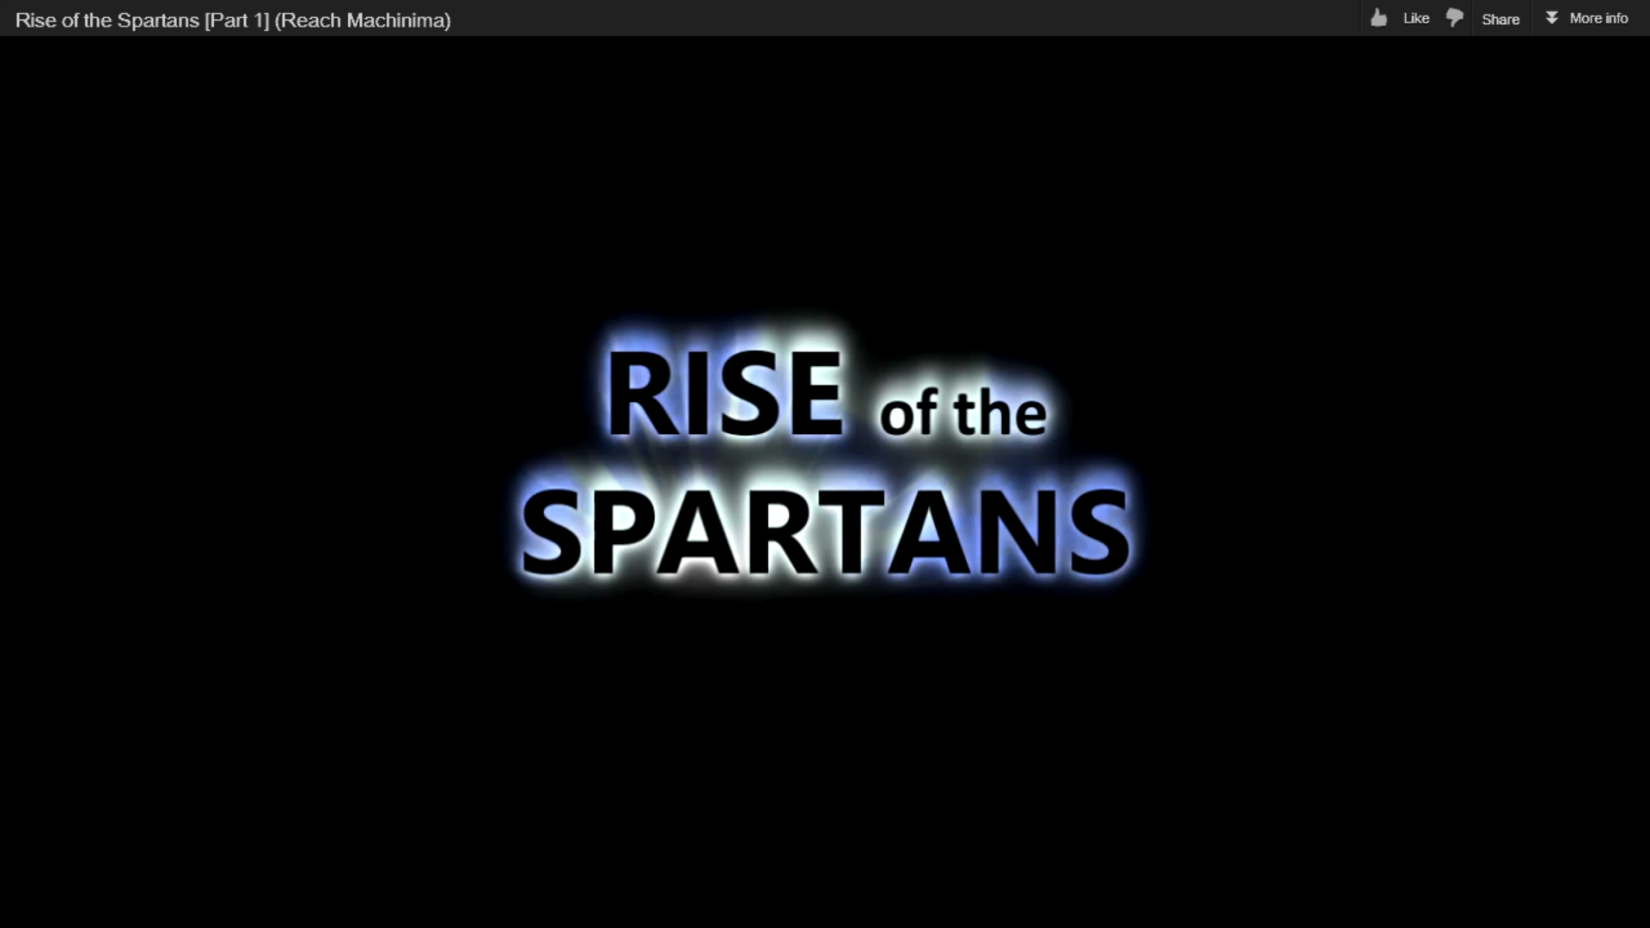 Rise of the Spartans II